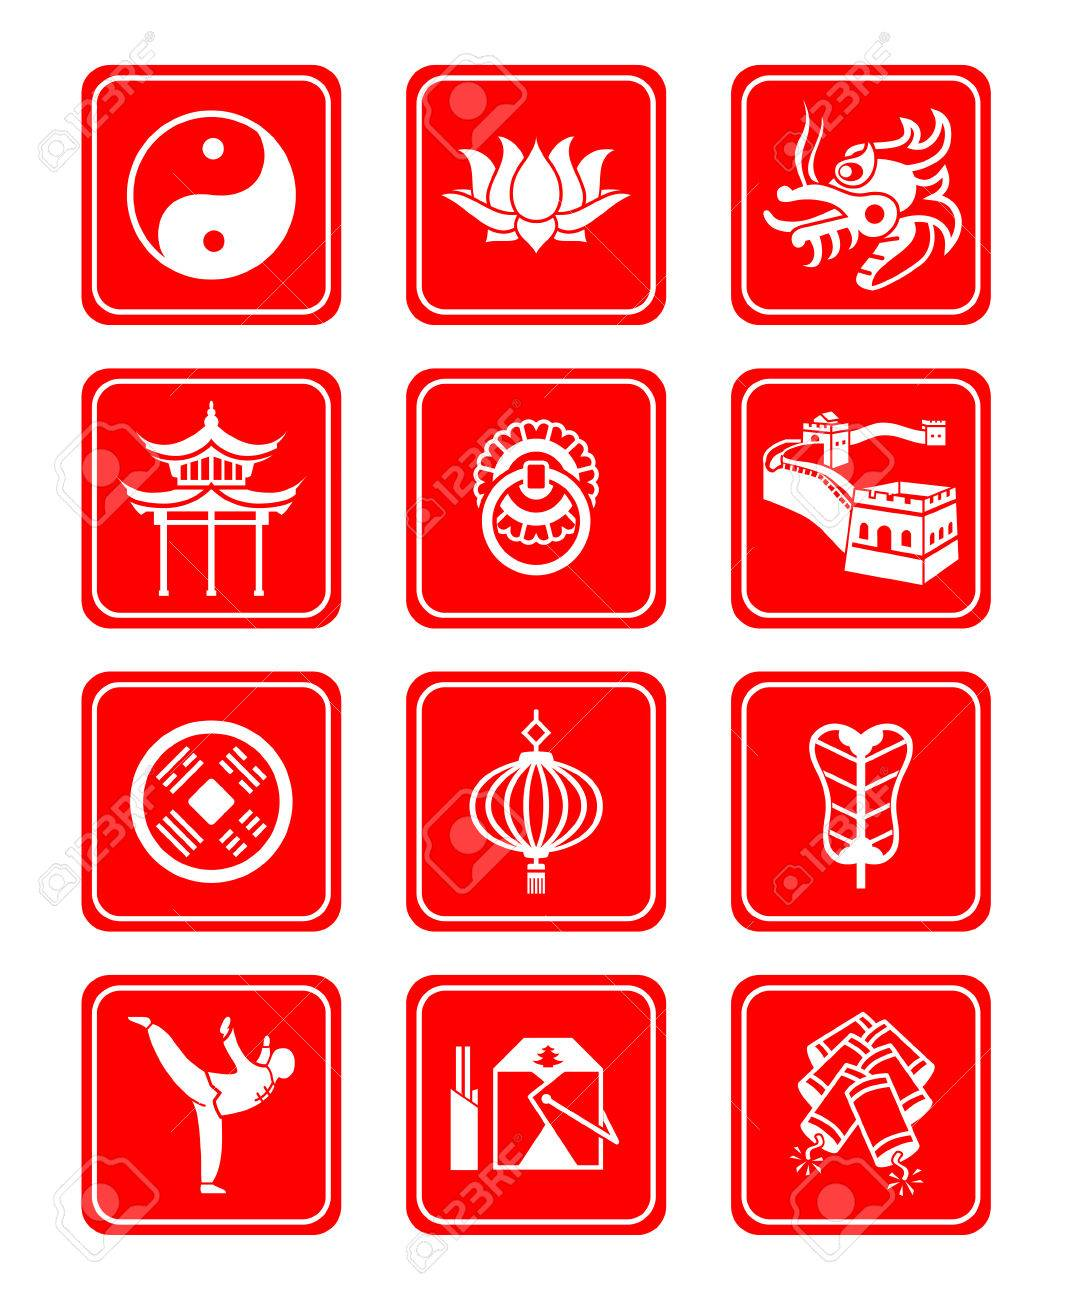 Traditional Chinese culture symbols and objects icon set. Stock Vector - 4225951